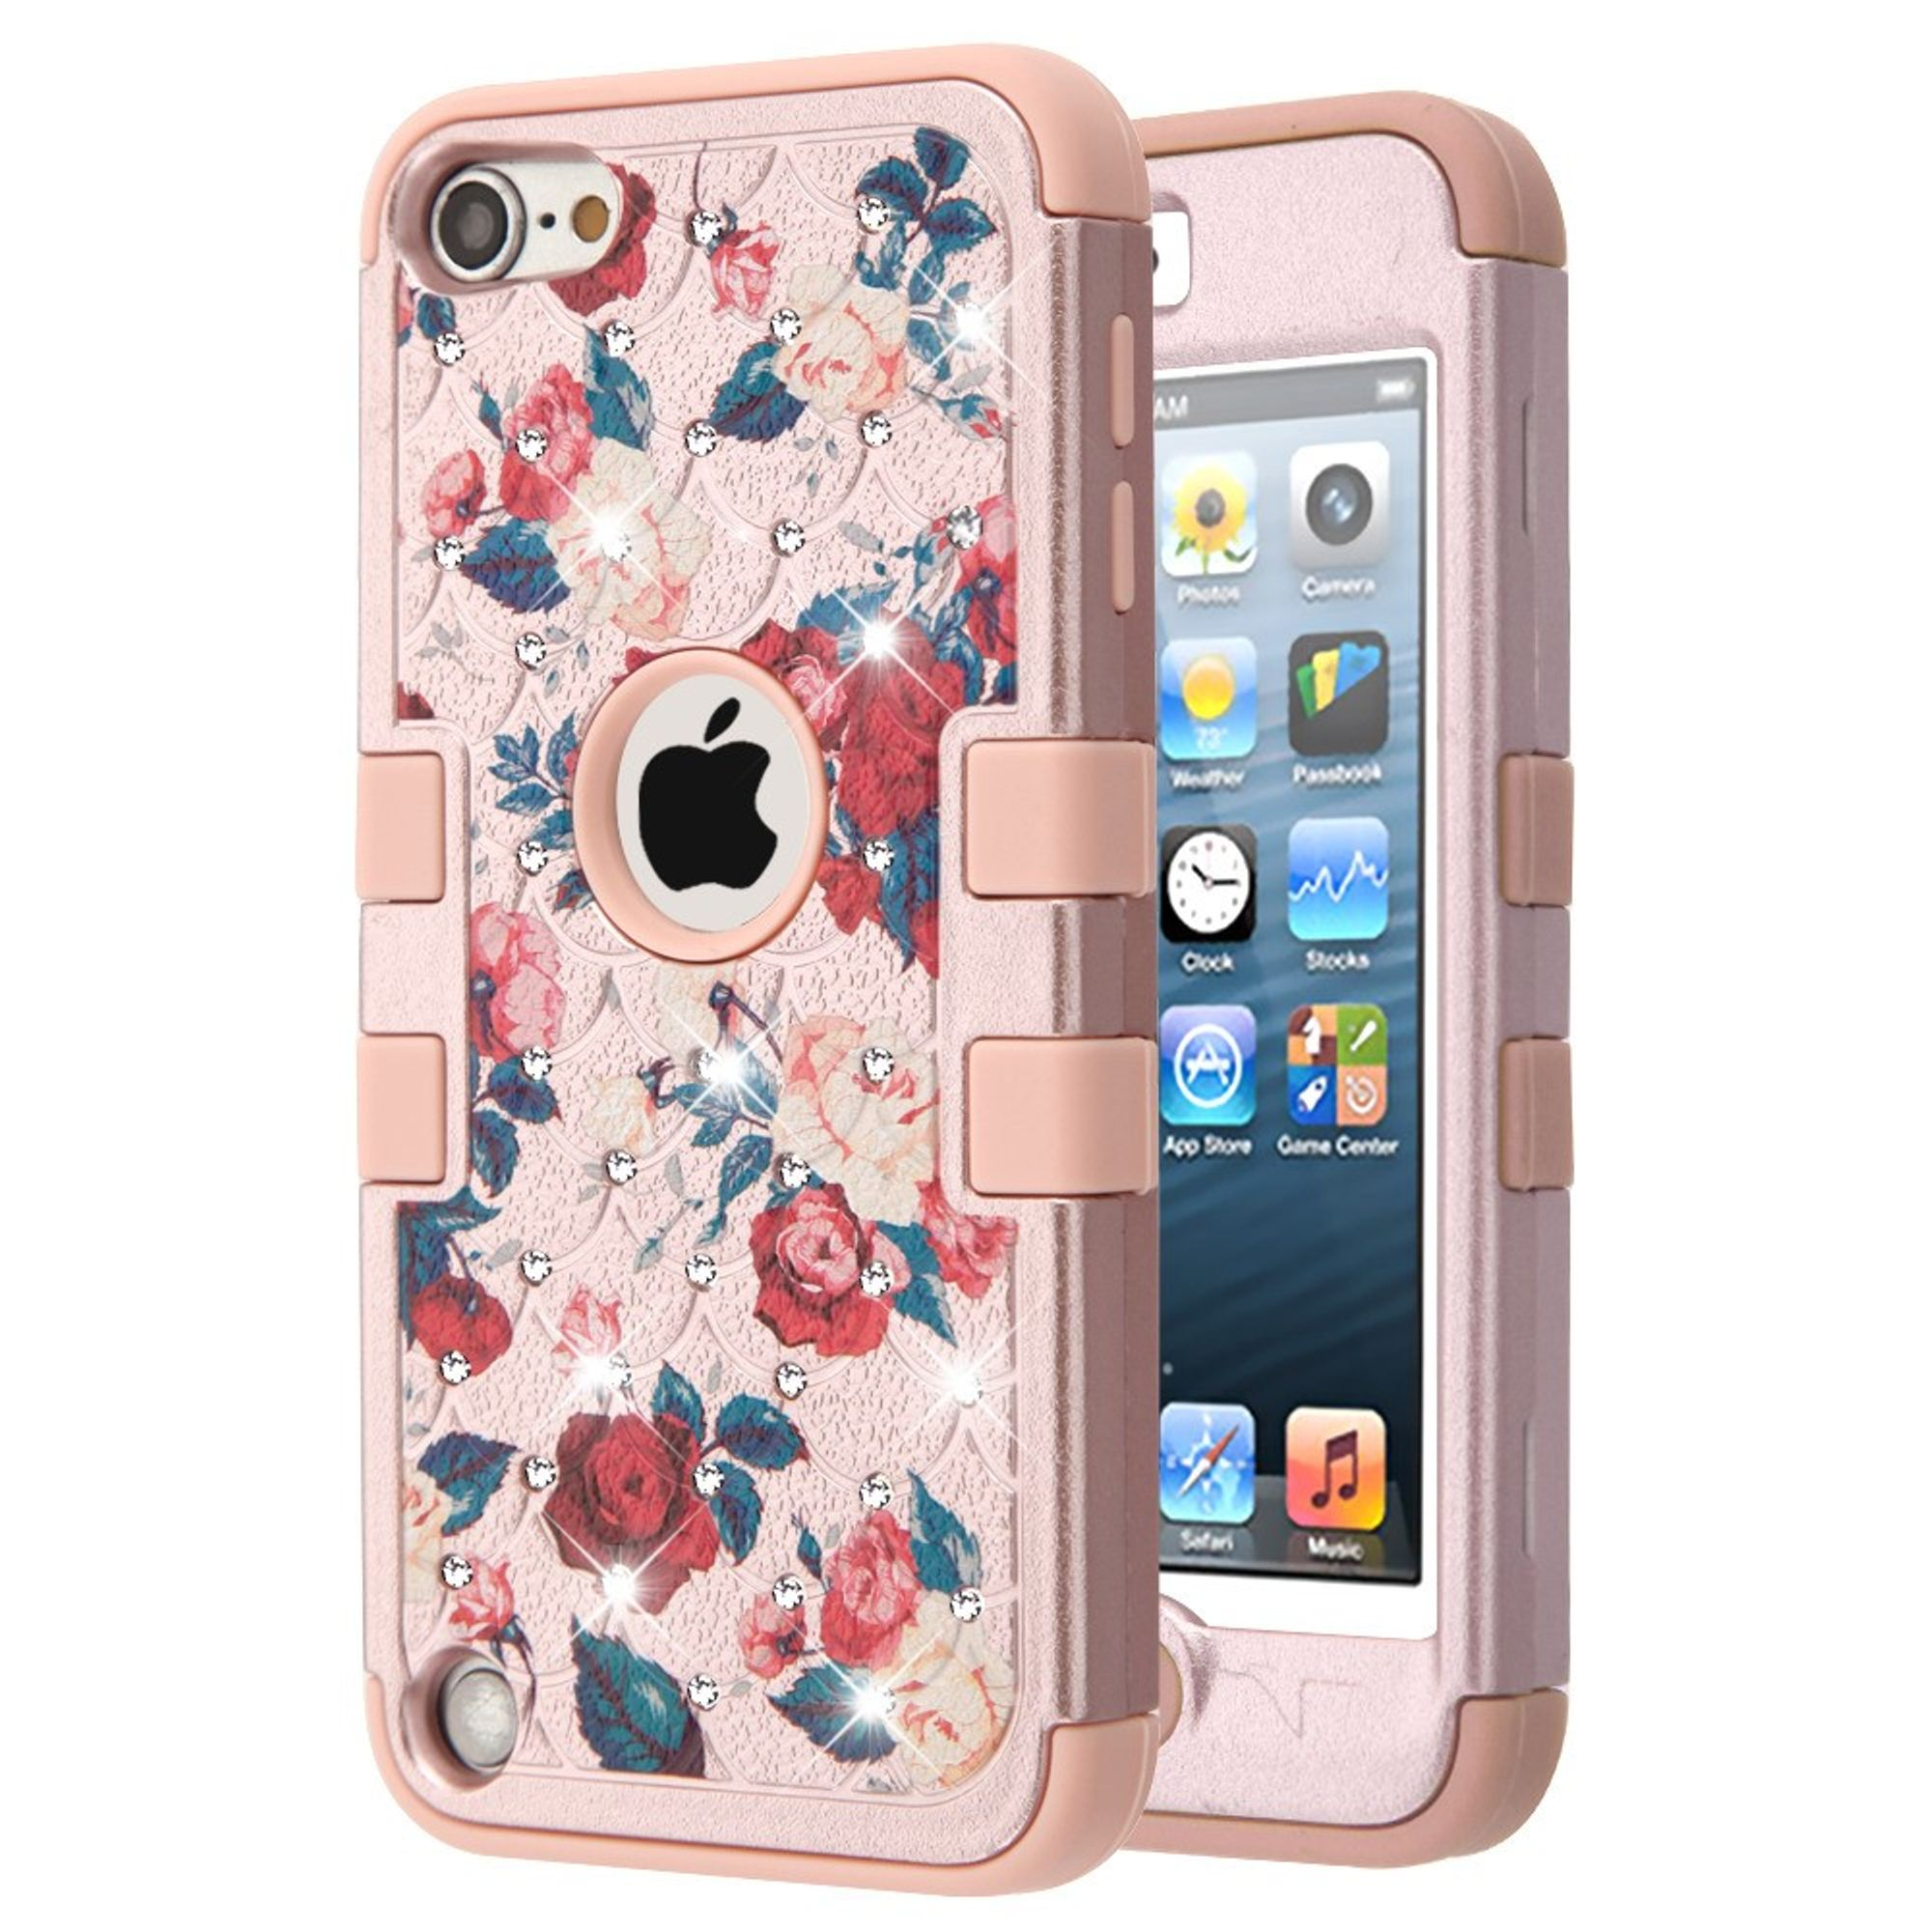 iPod Touch 6th generation case by Insten Full Star Roses Hard Plastic/Soft TPU Rubber Dual Layer [Shock Absorbing] Hybrid Case Cover w/Diamond For Apple iPod Touch 5th Gen/6th Gen